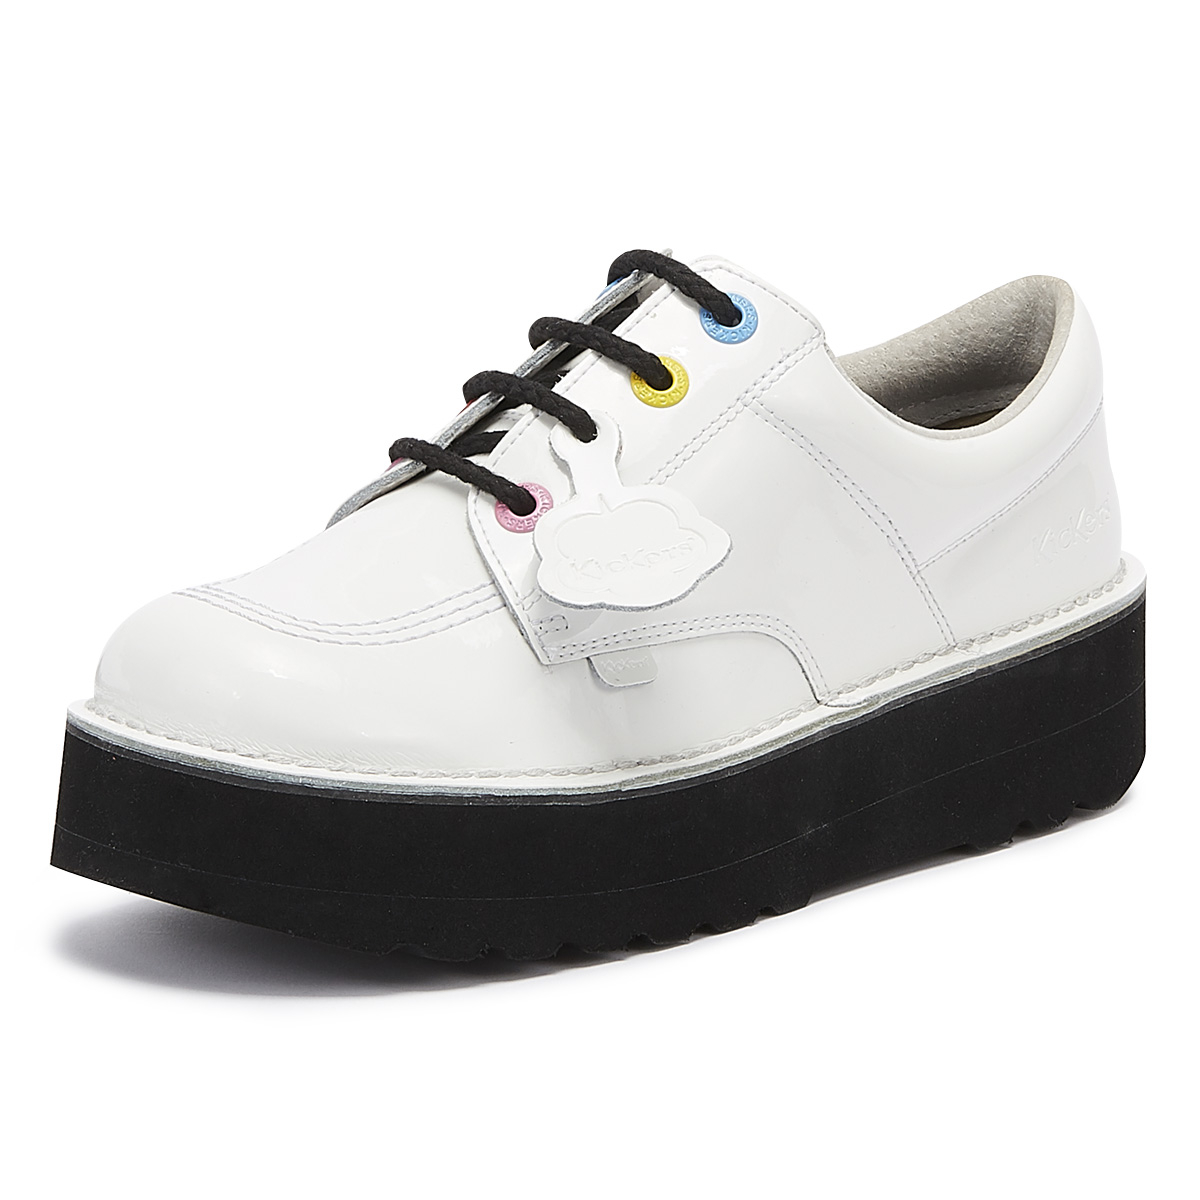 Kickers KICK LO W CORE Womens Ladies Leather Lace-Up Smart Casual Shoes Black